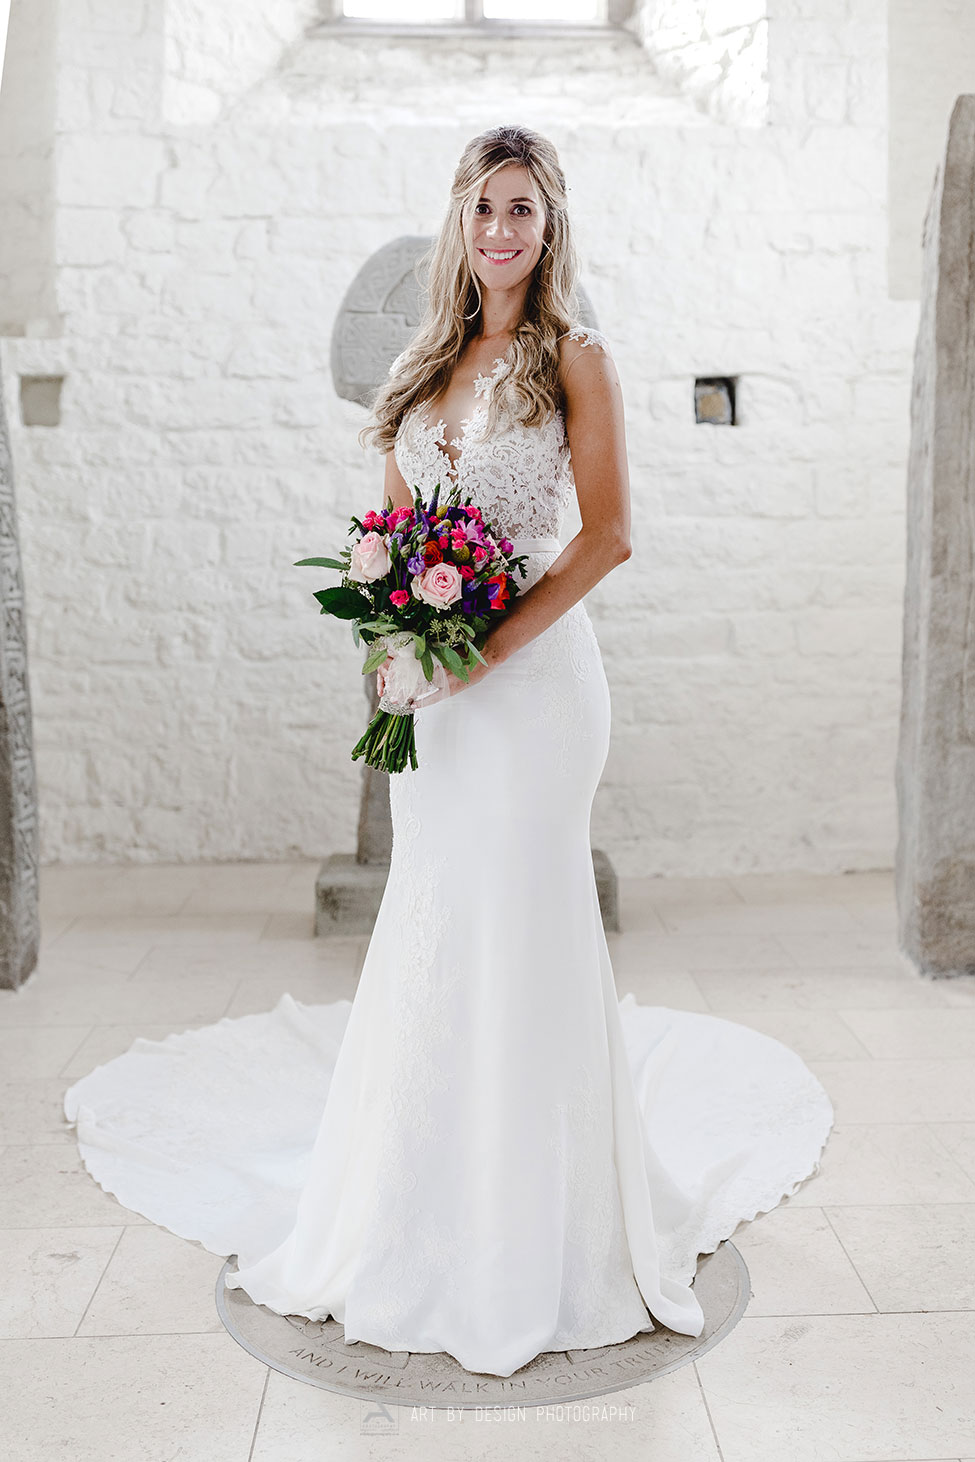 Wedding Dress Inspiration South Wales | Art by Design |